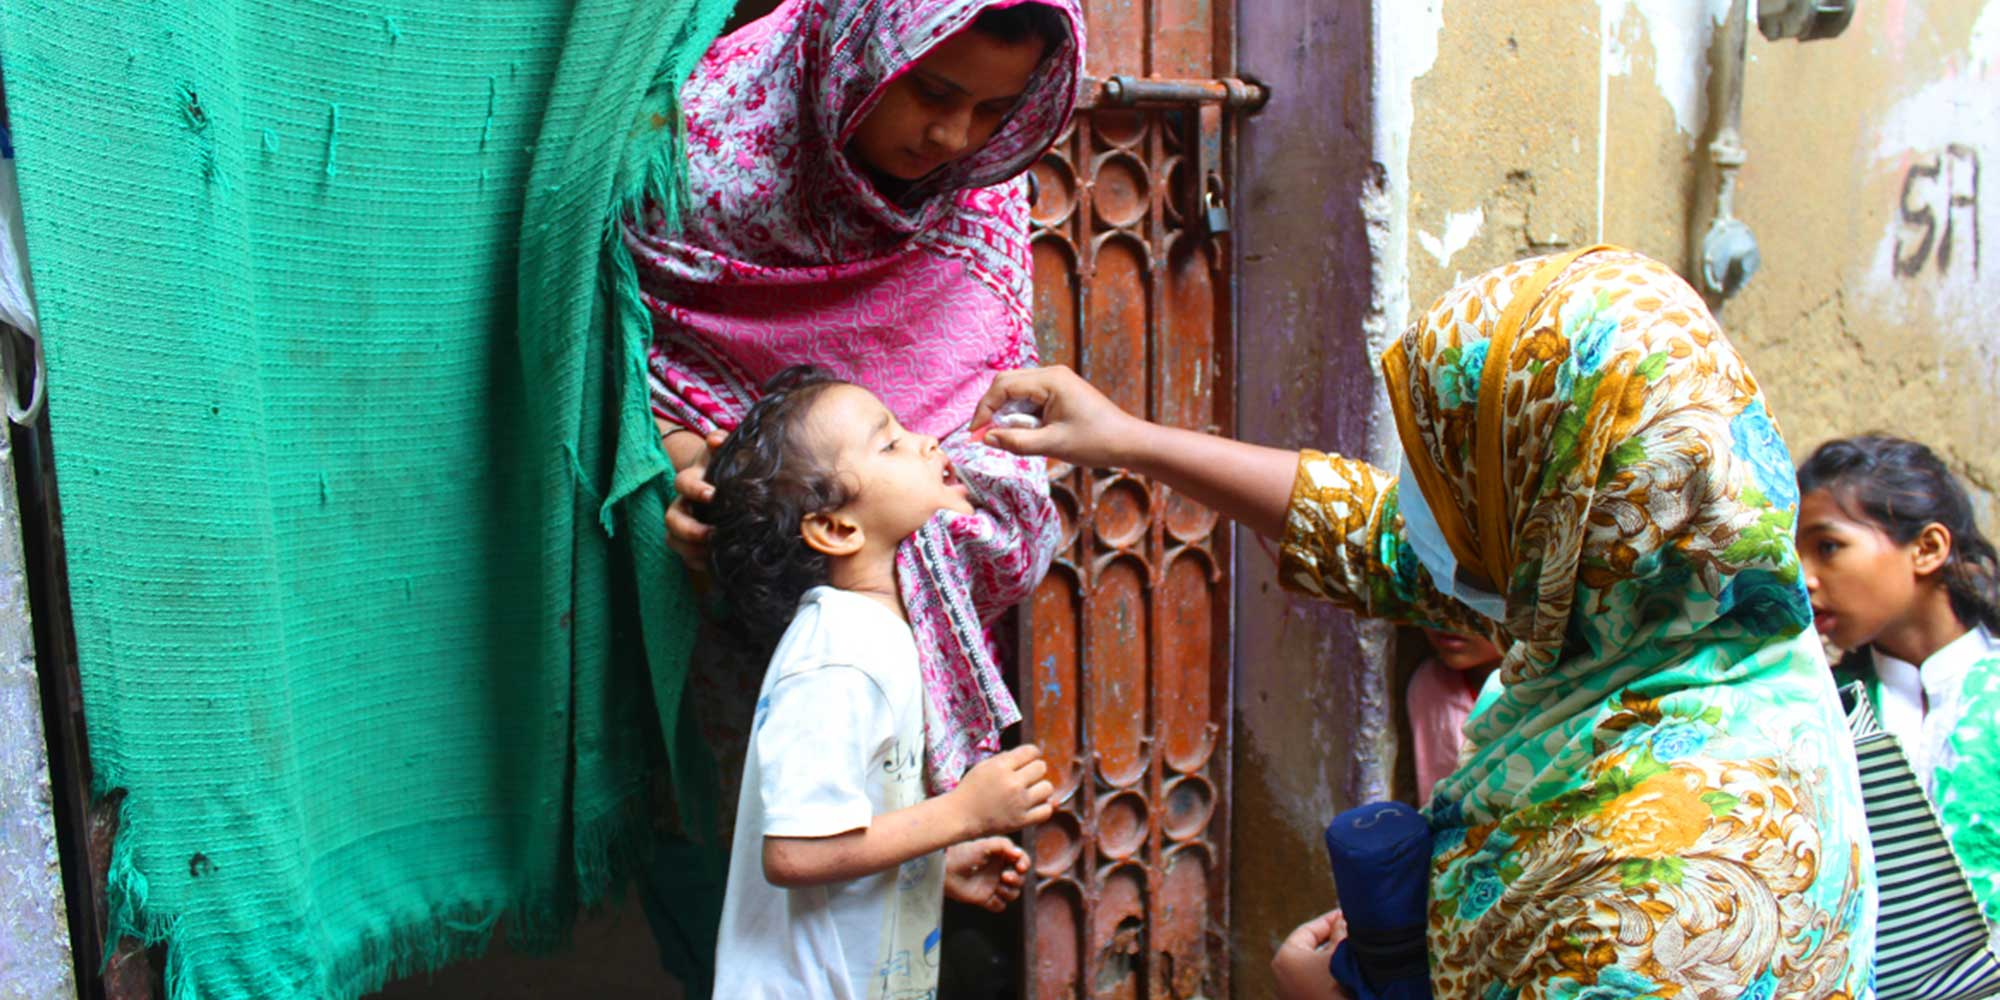 Health worker Saira Faisal vaccinates a child against polio in Saddar town, Karachi, in August 2020. ©UNICEF/Pakistan